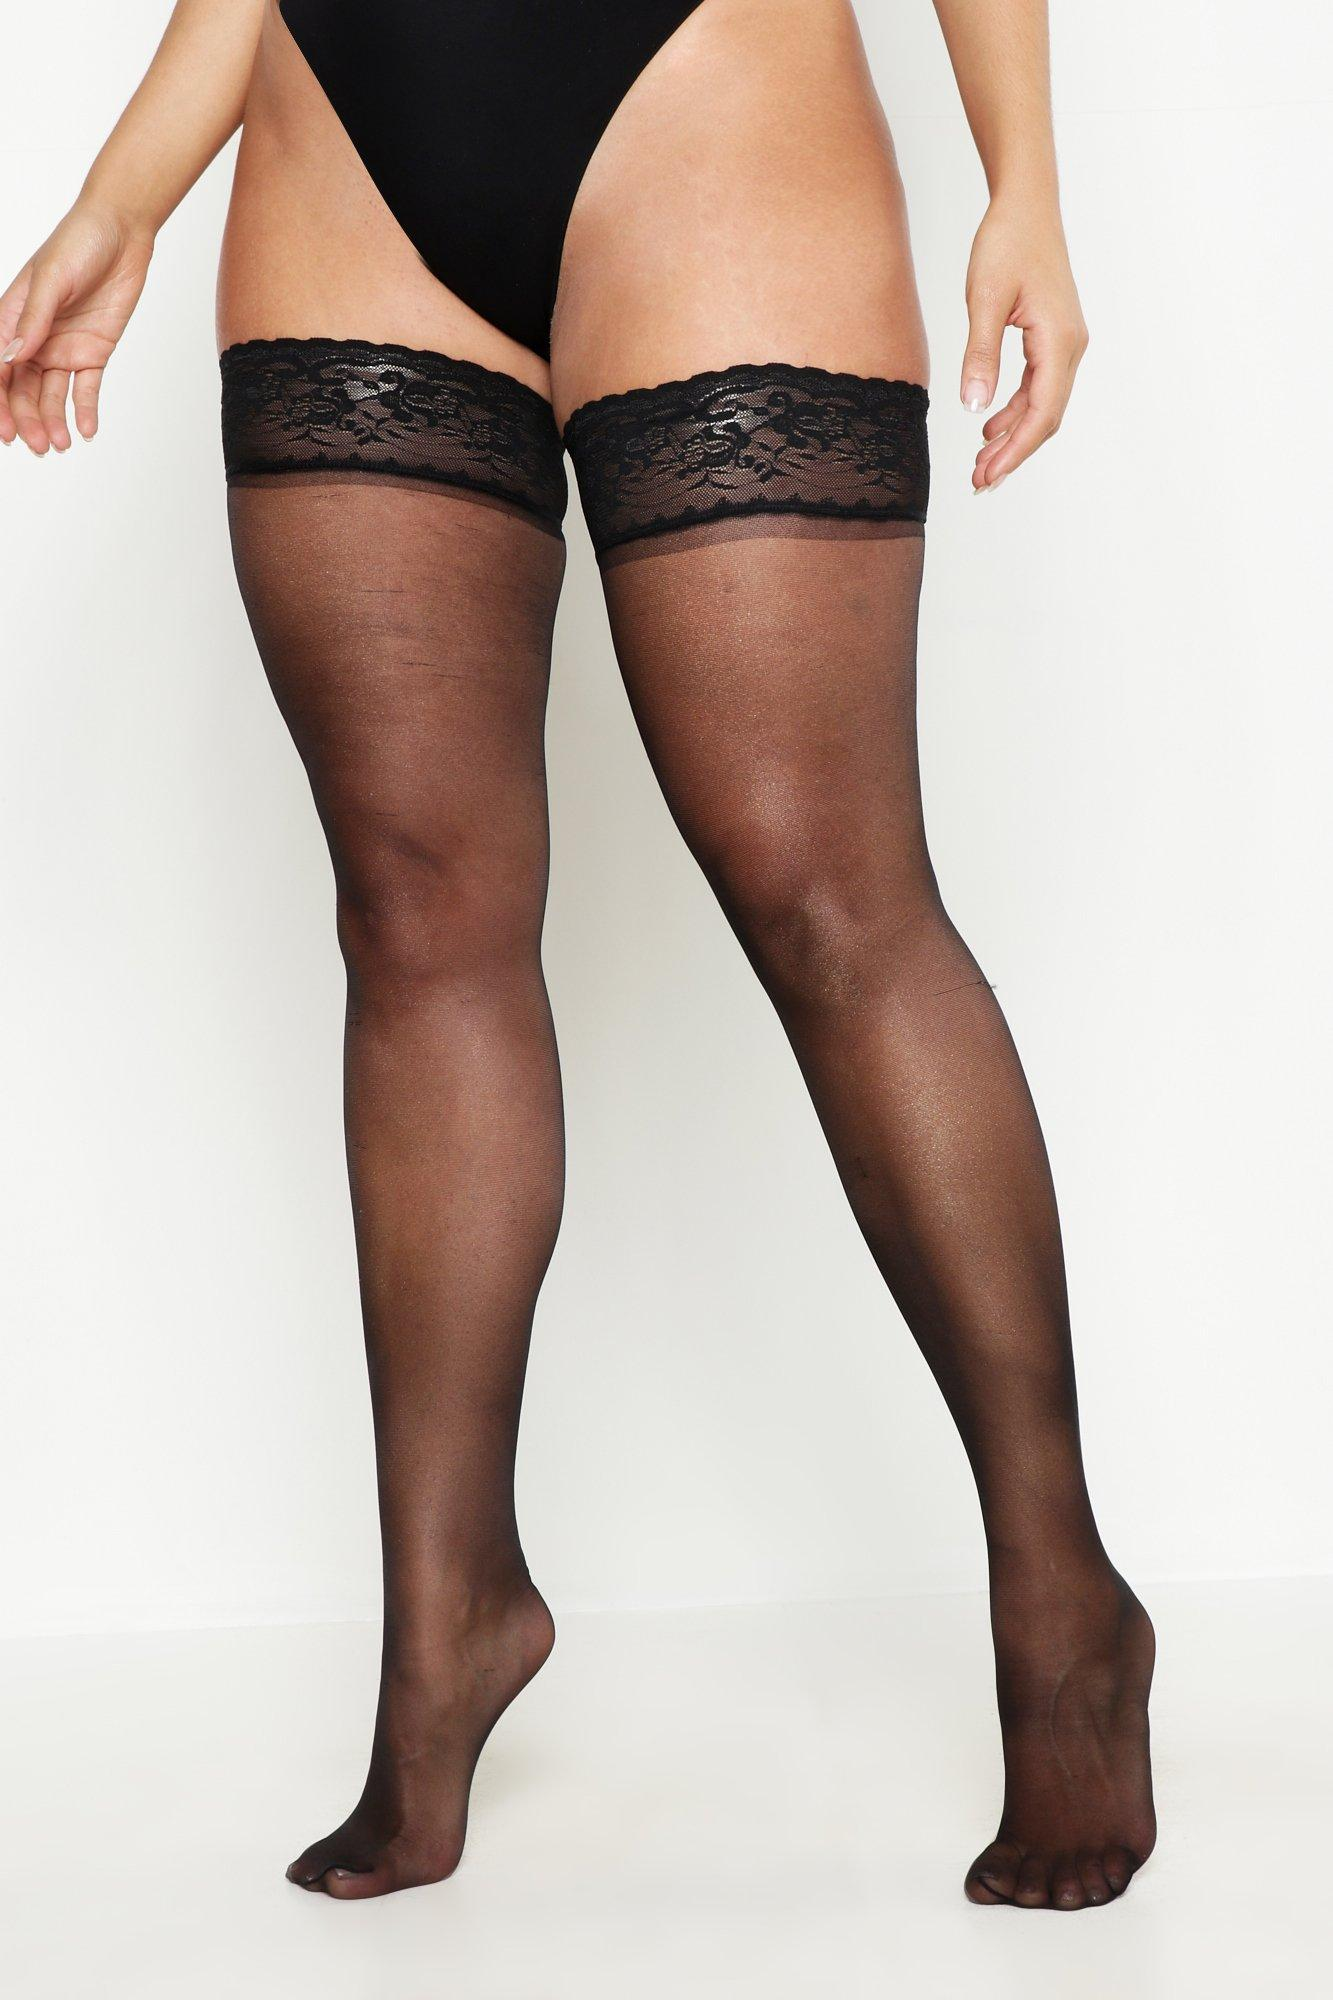 Plus Lace Hold Up Stockings